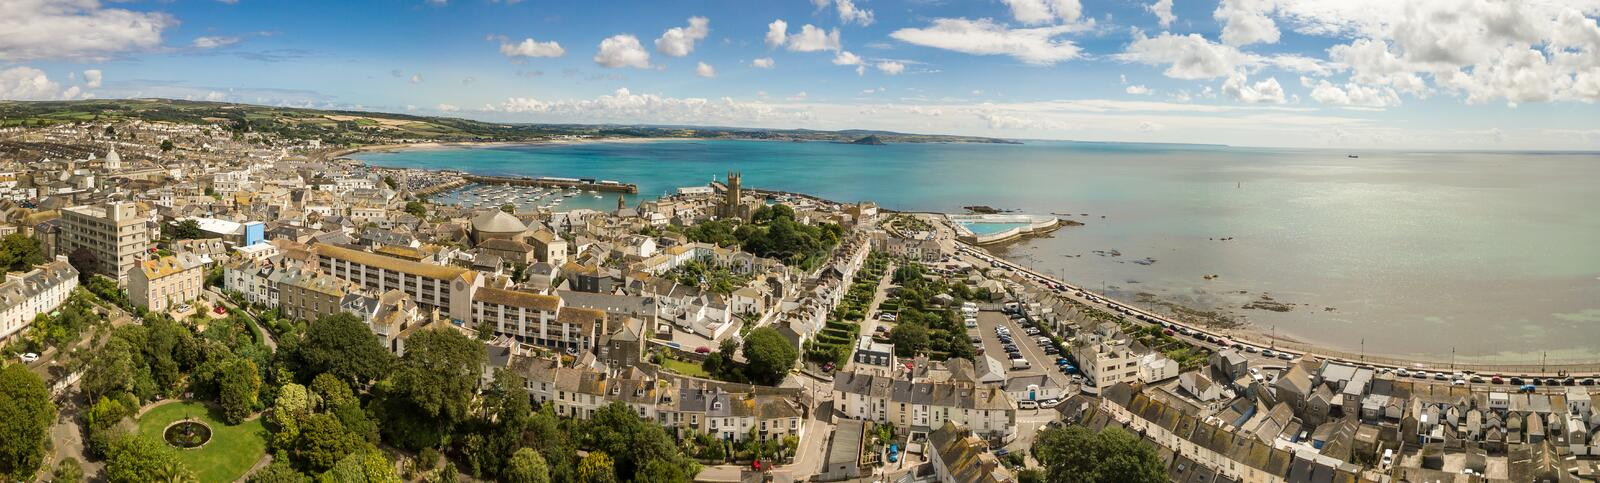 Aerial panorama of Penzance royalty free stock images